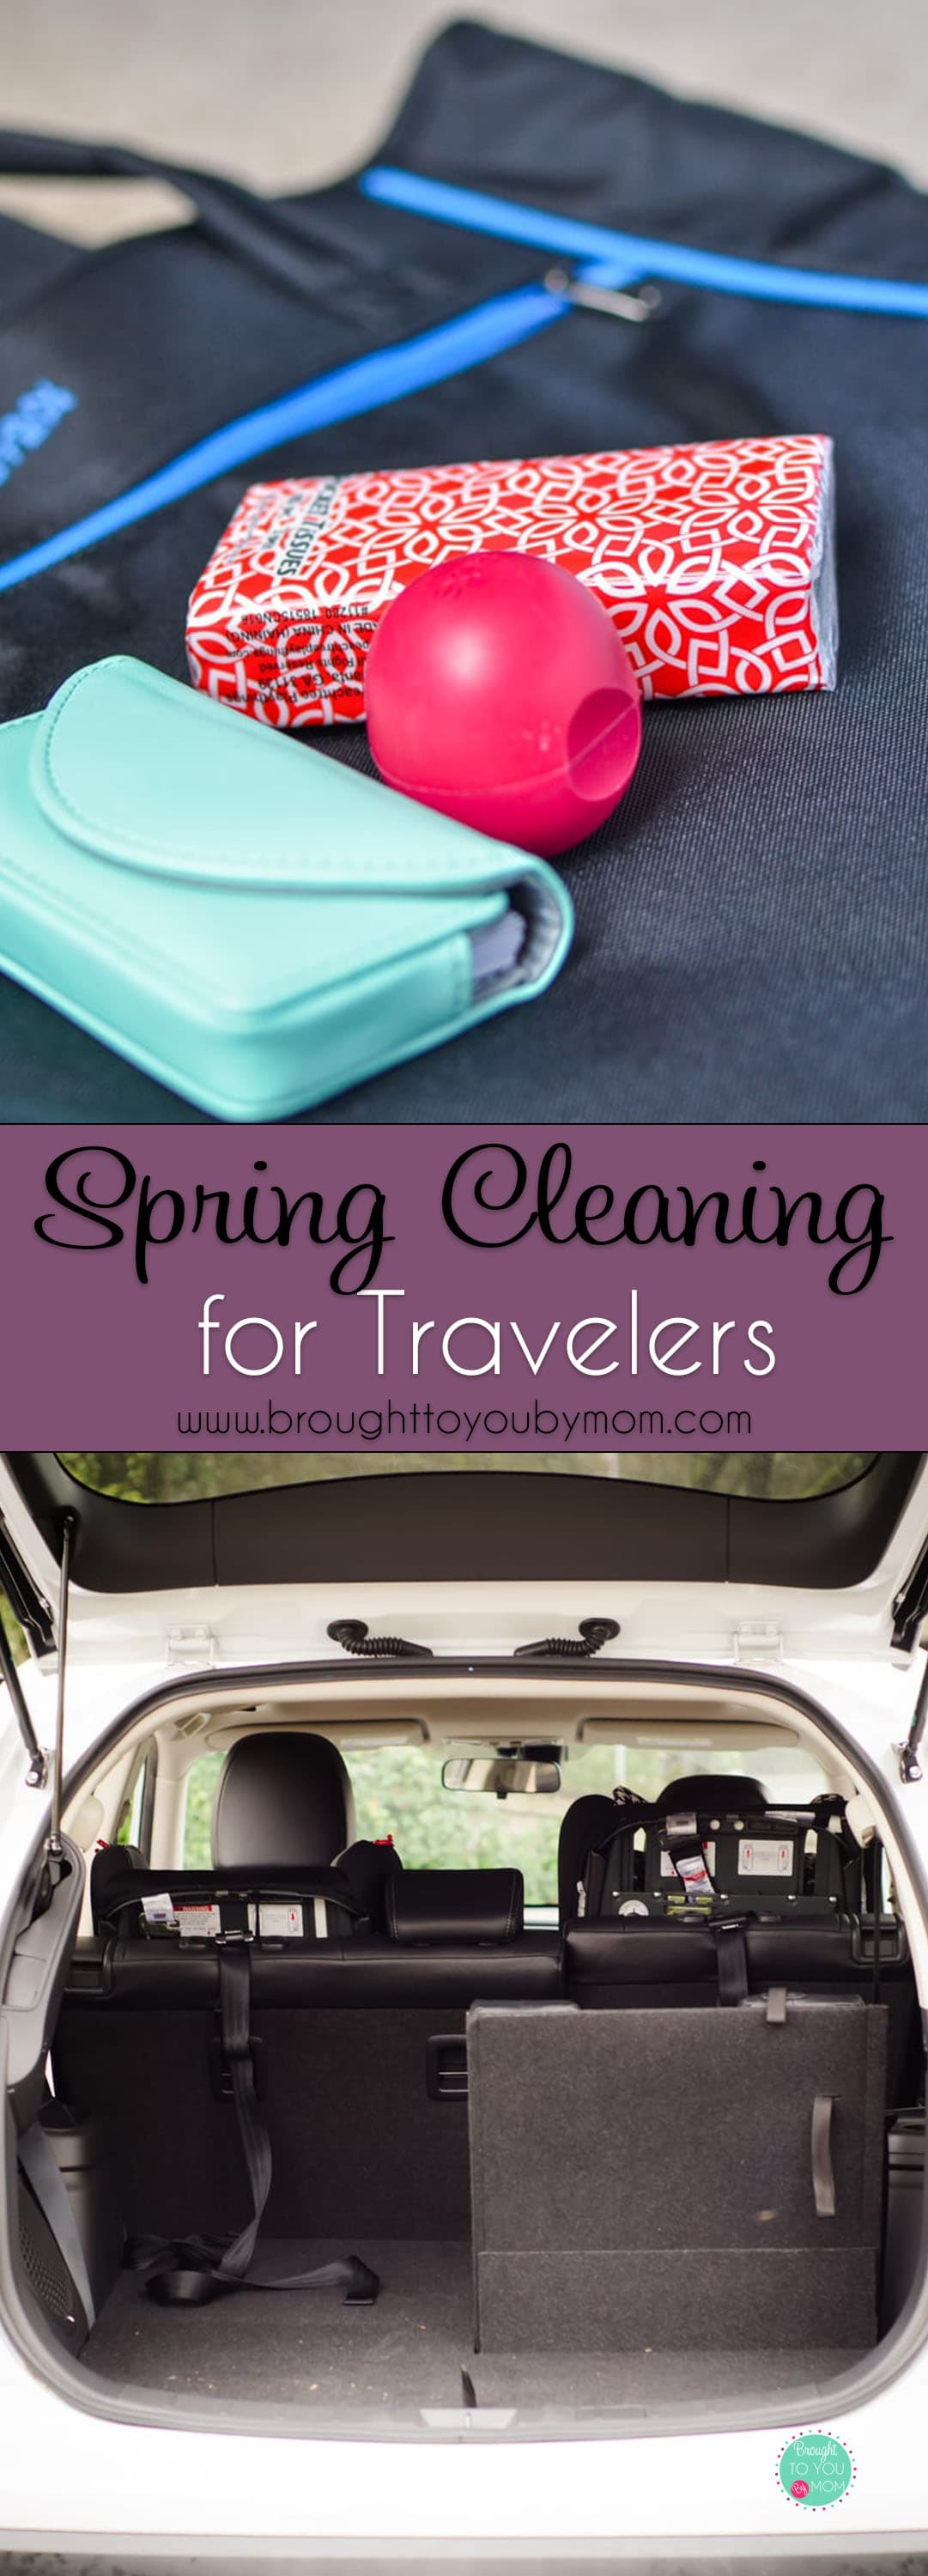 Spring cleaning for travelers tips. How to clean luggage, what you should be updating and more. Now is the time to get on spring cleaning for travelers before any upcoming road trips and travel plans for spring and summer. #traveltips #springcleaning #travel